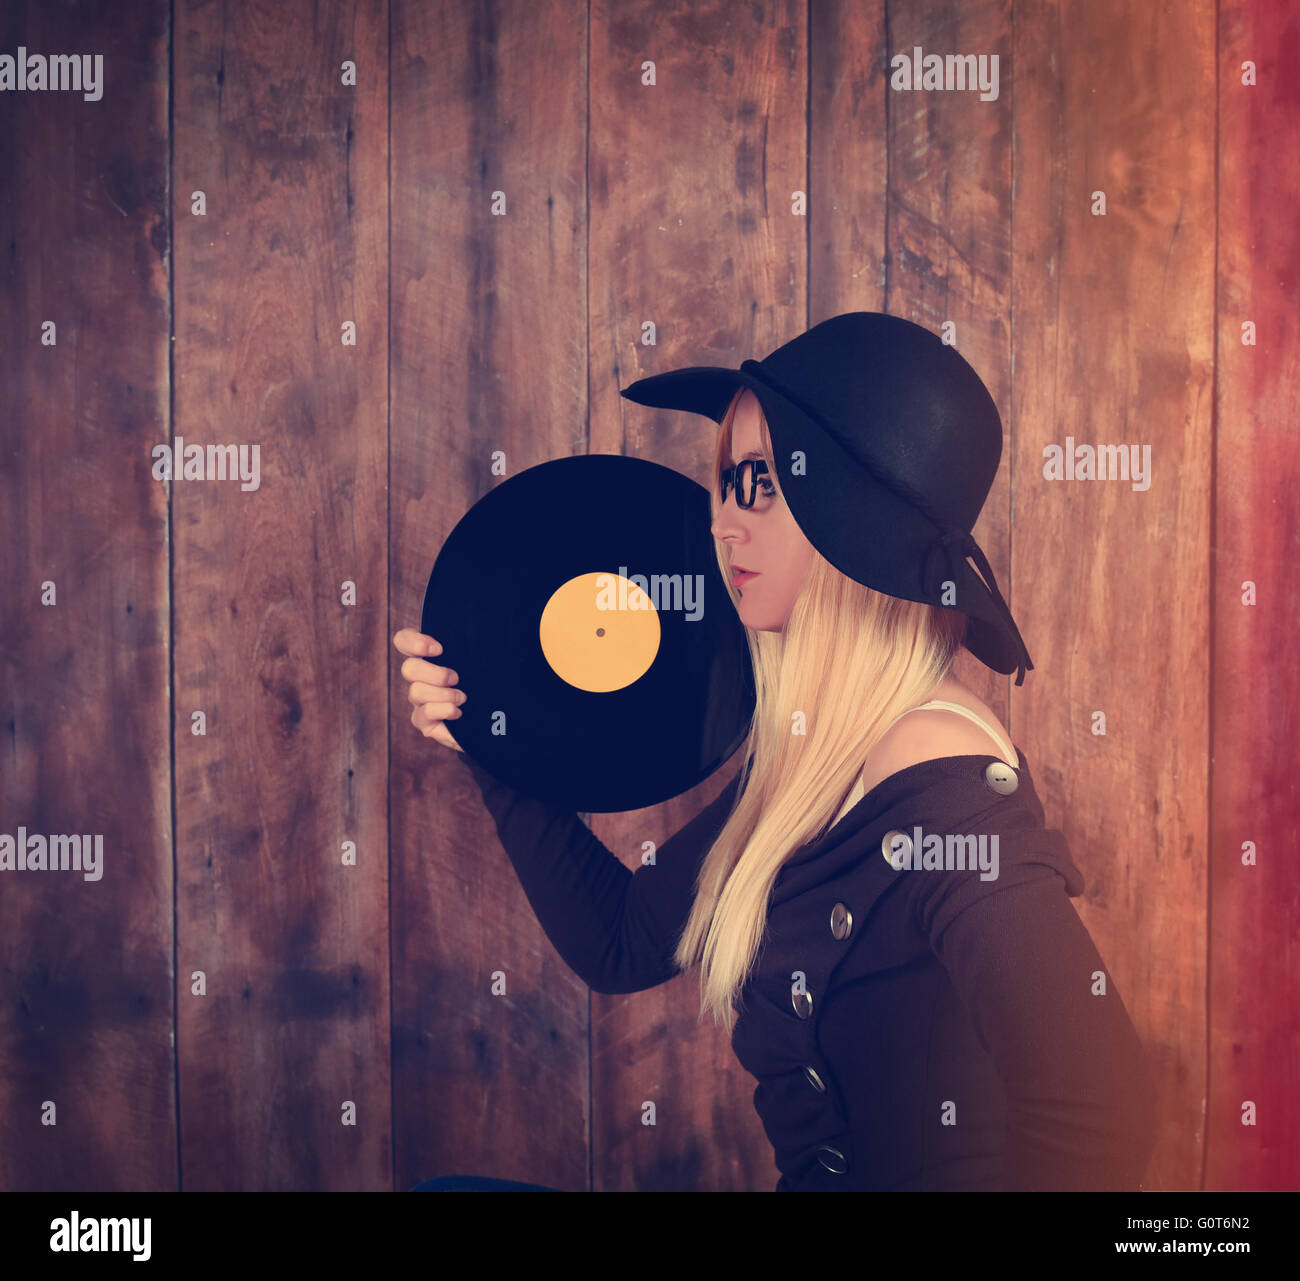 A blonde hipster girl with glasses is holding a vintage vinyl record for a music entertainment concept. - Stock Image